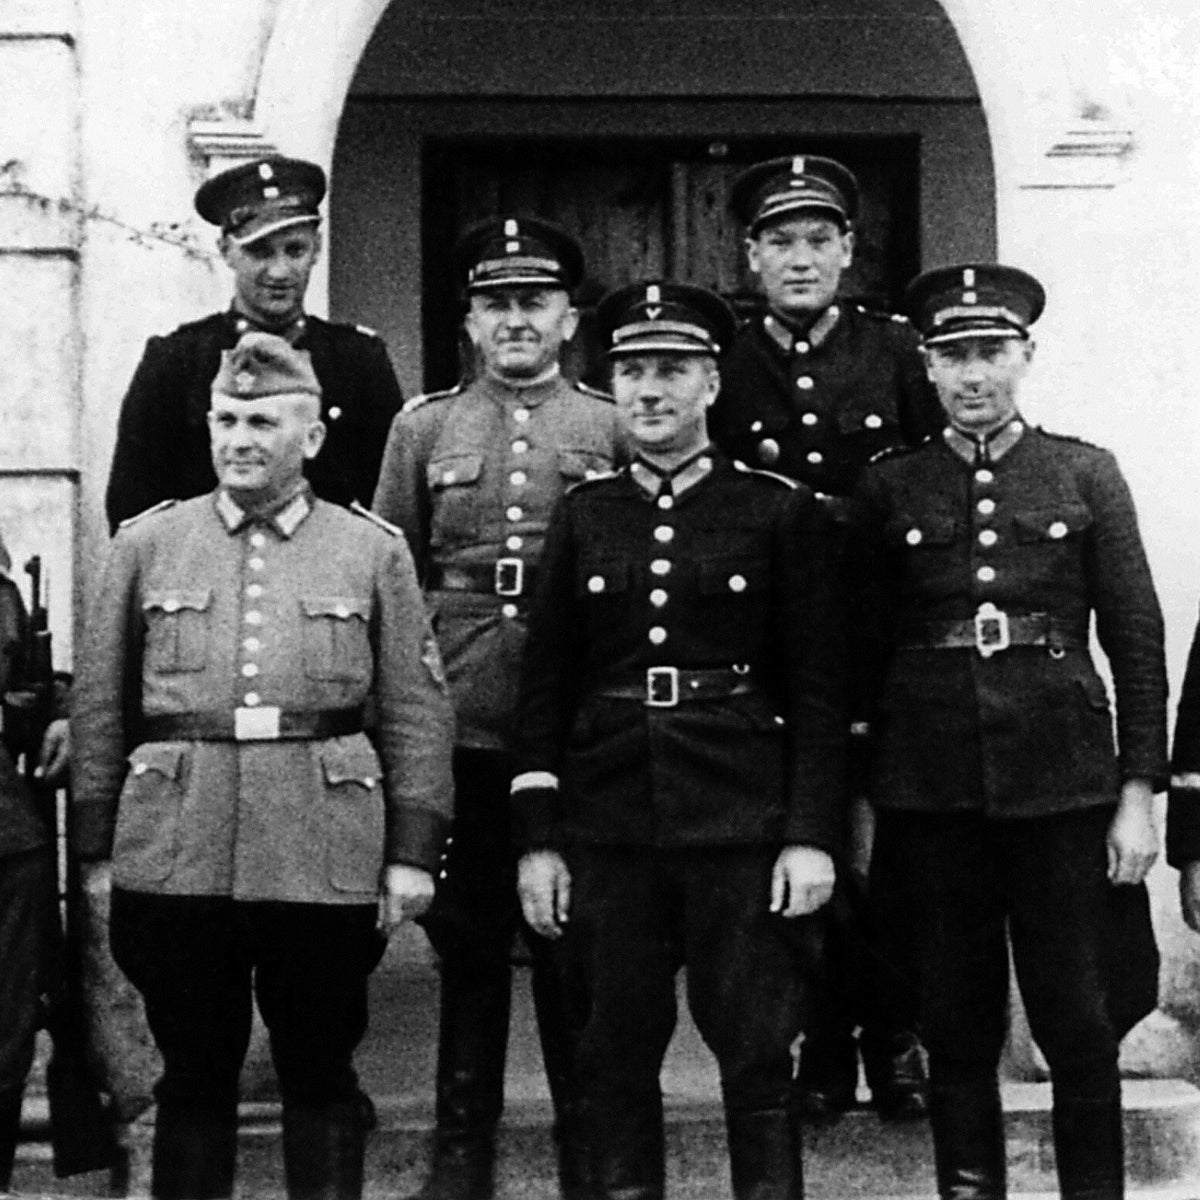 German and Polish police, Poland, 1943.